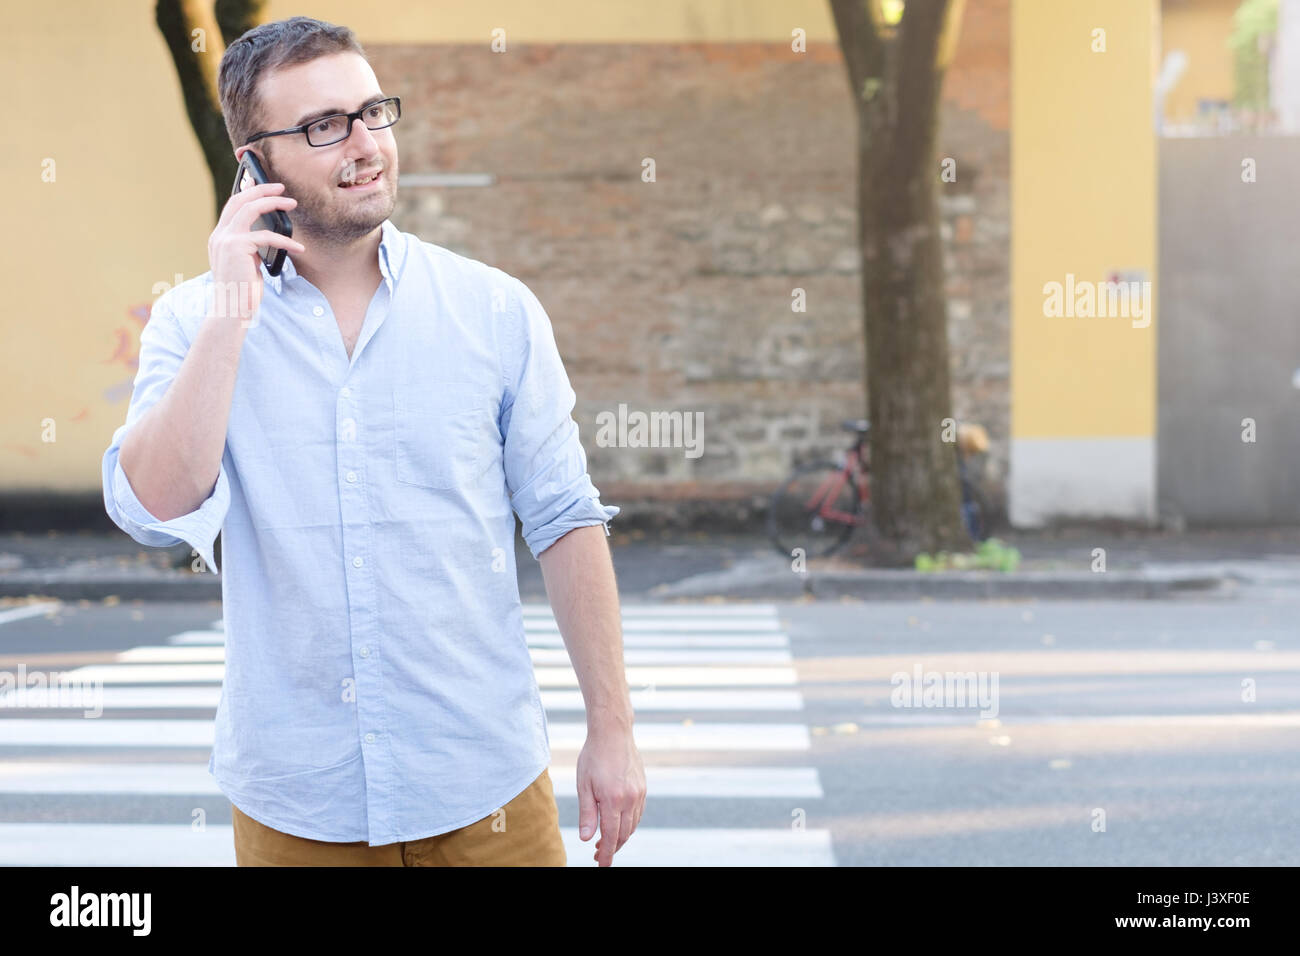 Man calling on his smartphone and walking in the city streets - Stock Image